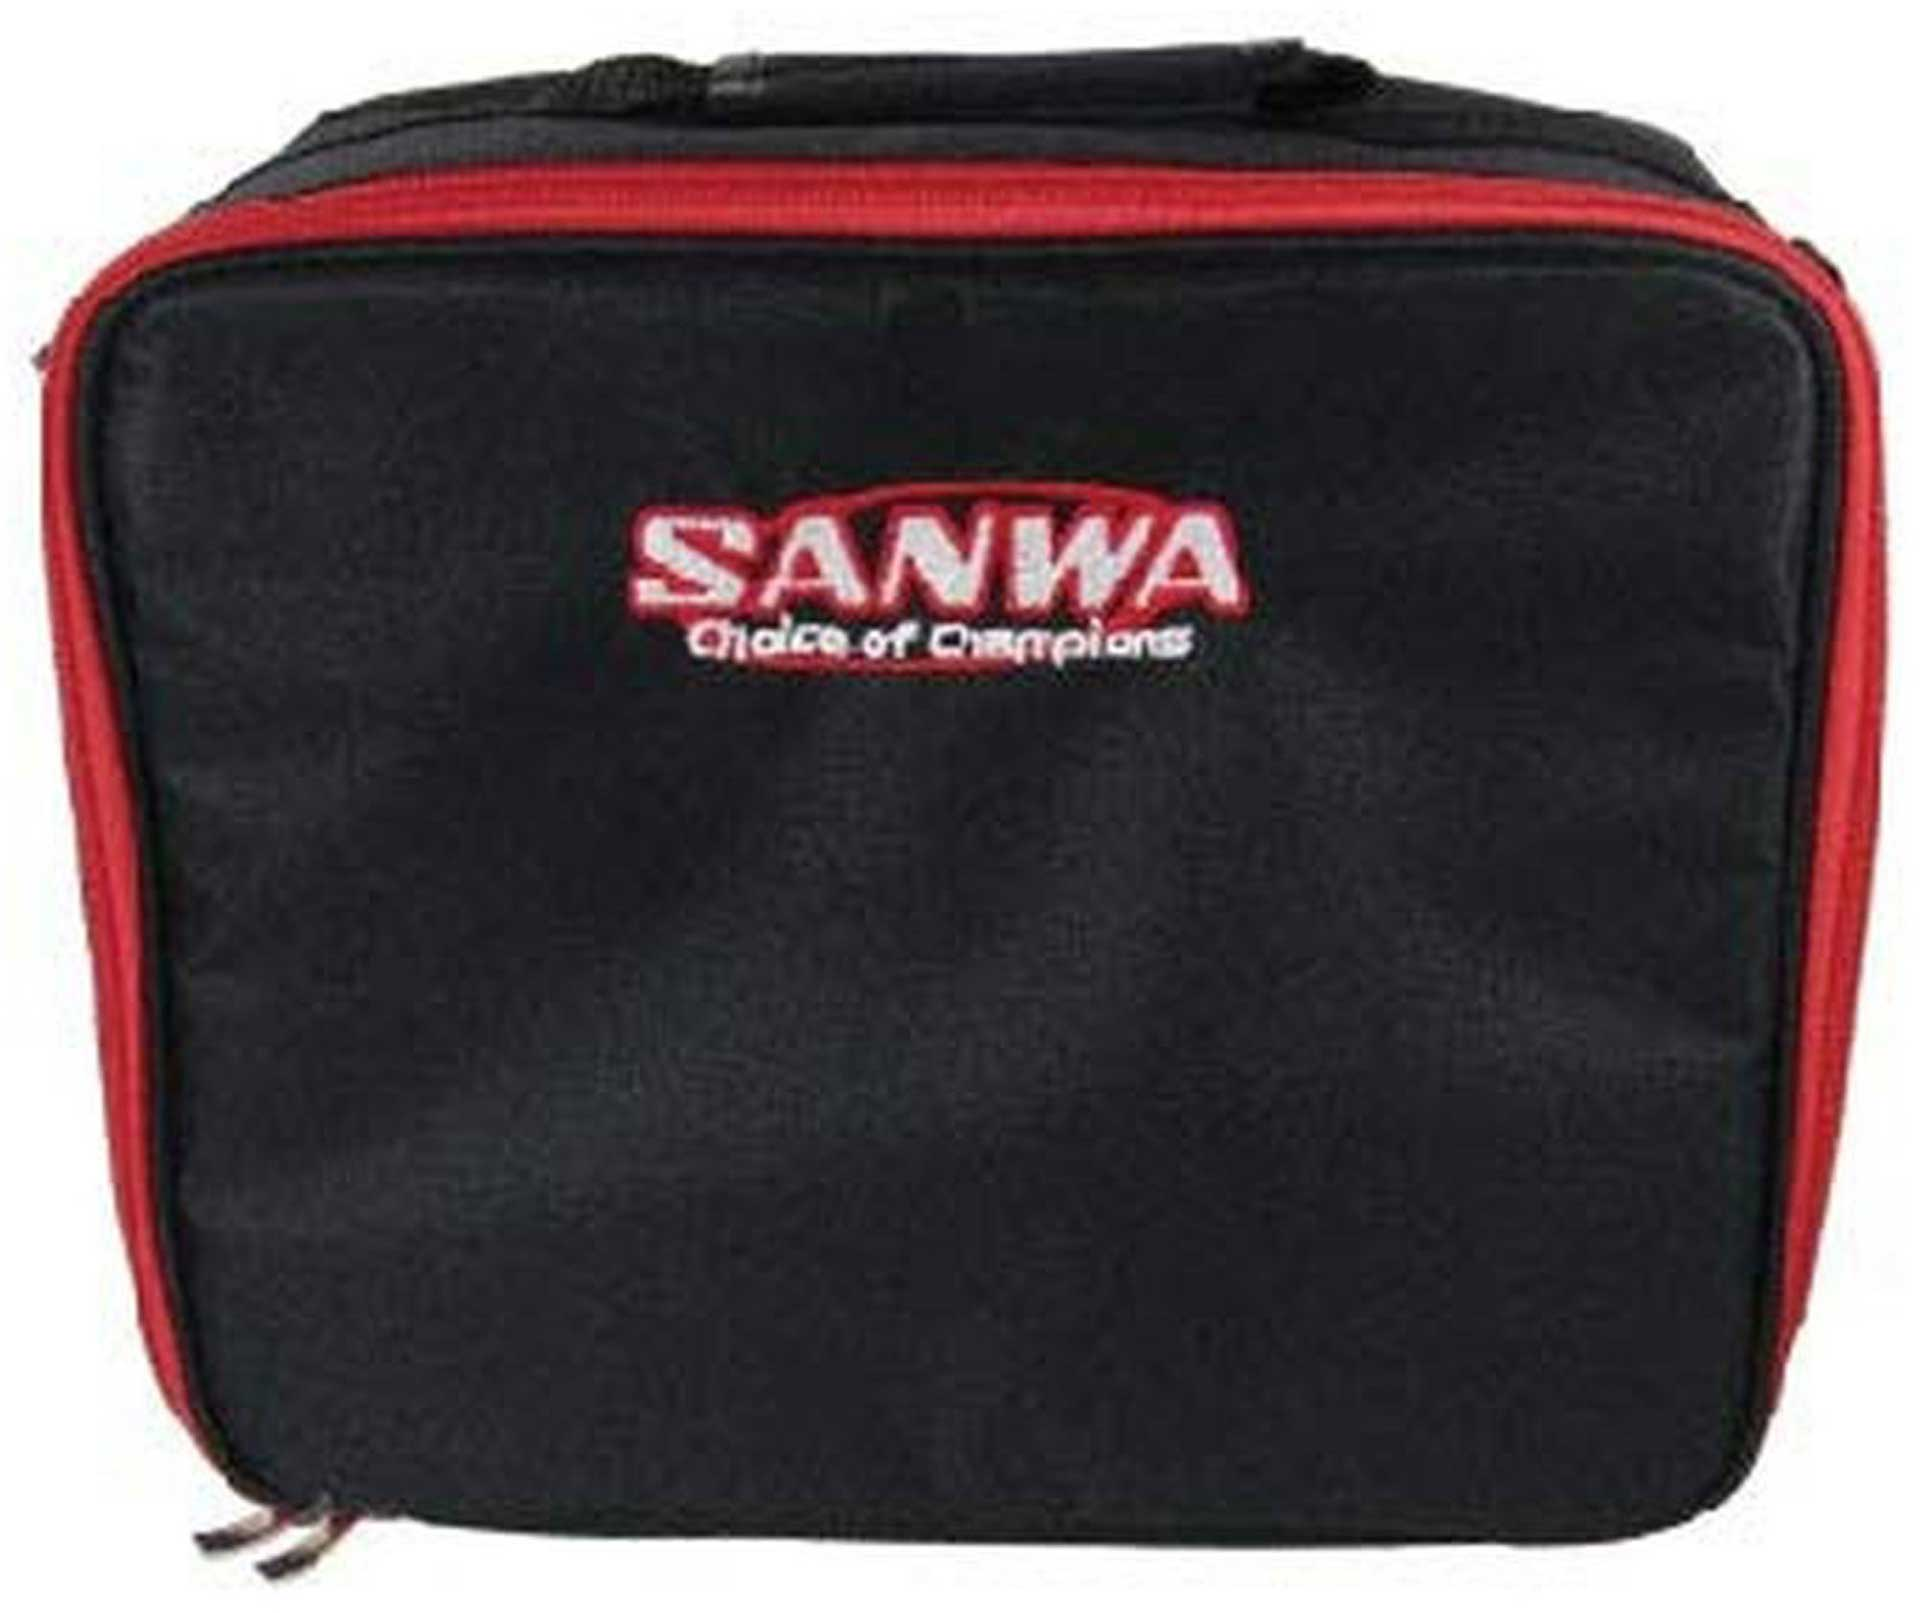 Transport-Tasche Sanwa Multi-Bag